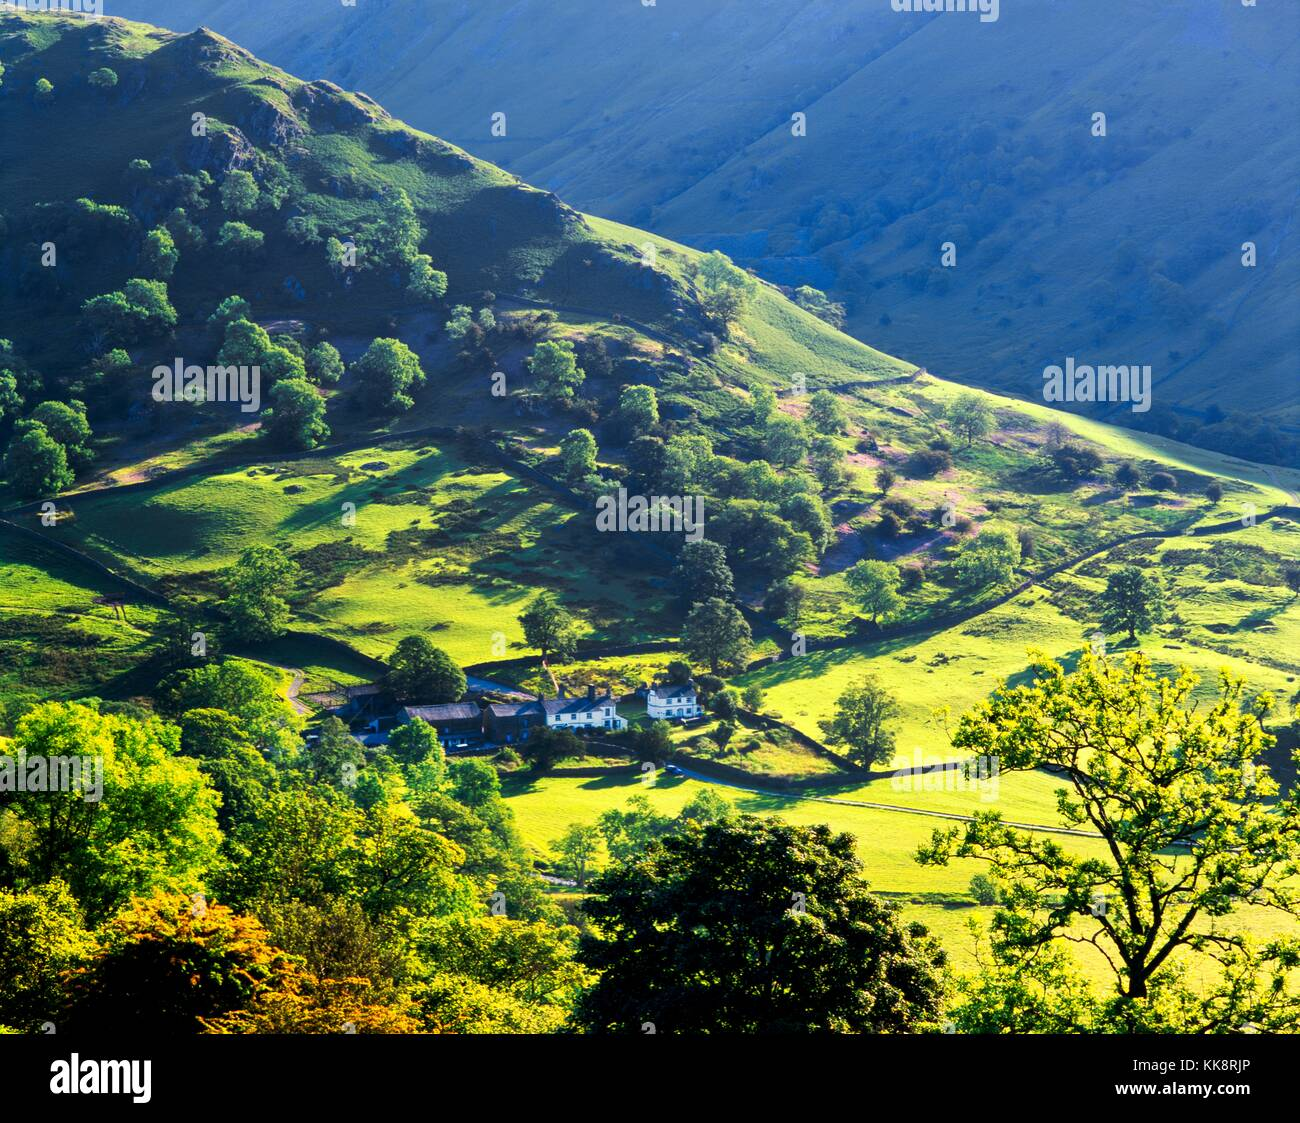 Hill farm at the head of Troutbeck valley, north of Windermere, in the Lake District National Park, Cumbria, England. - Stock Image